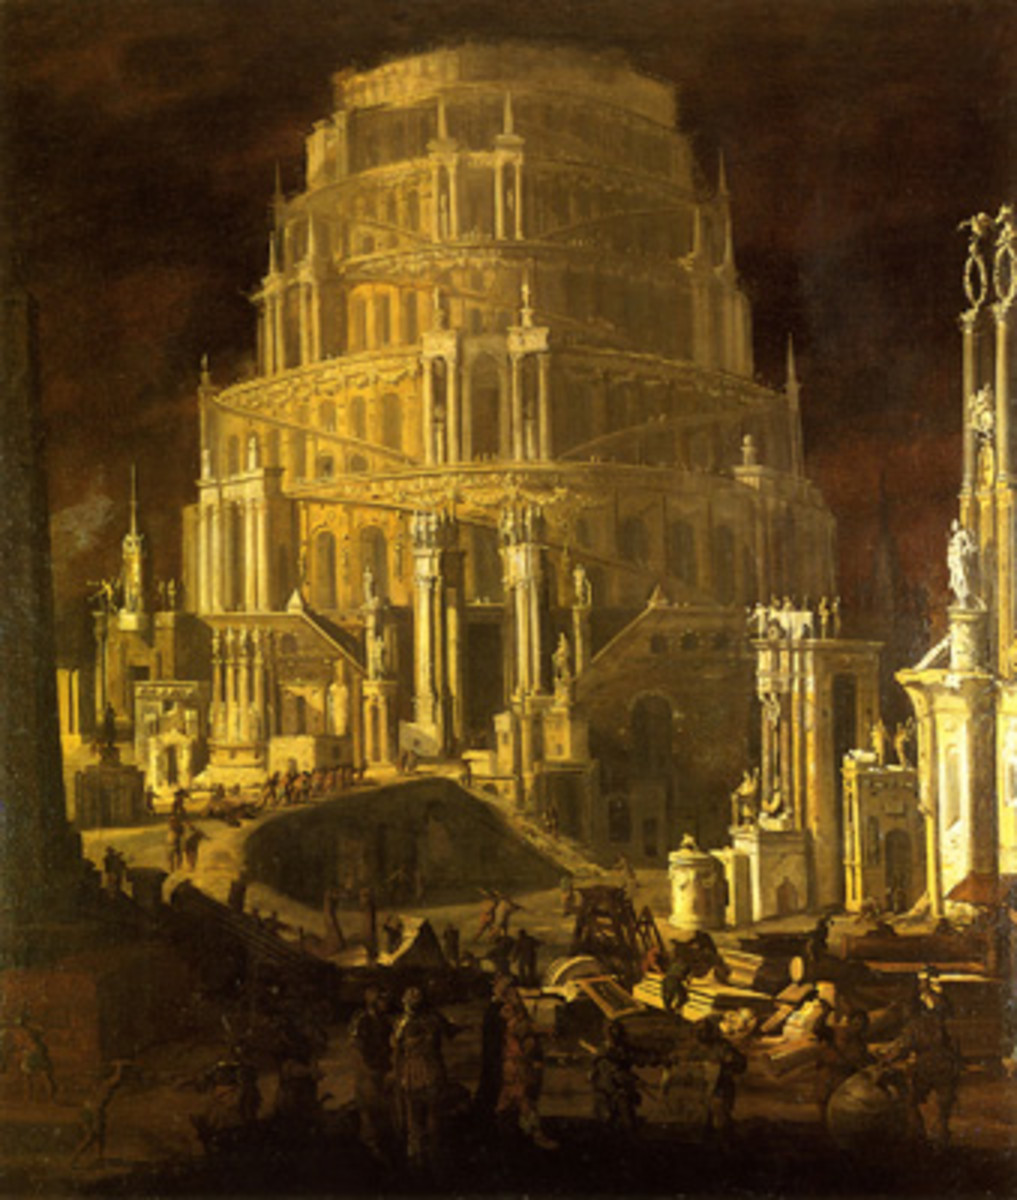 The tower of babel is an oft cited comparison for European language policy